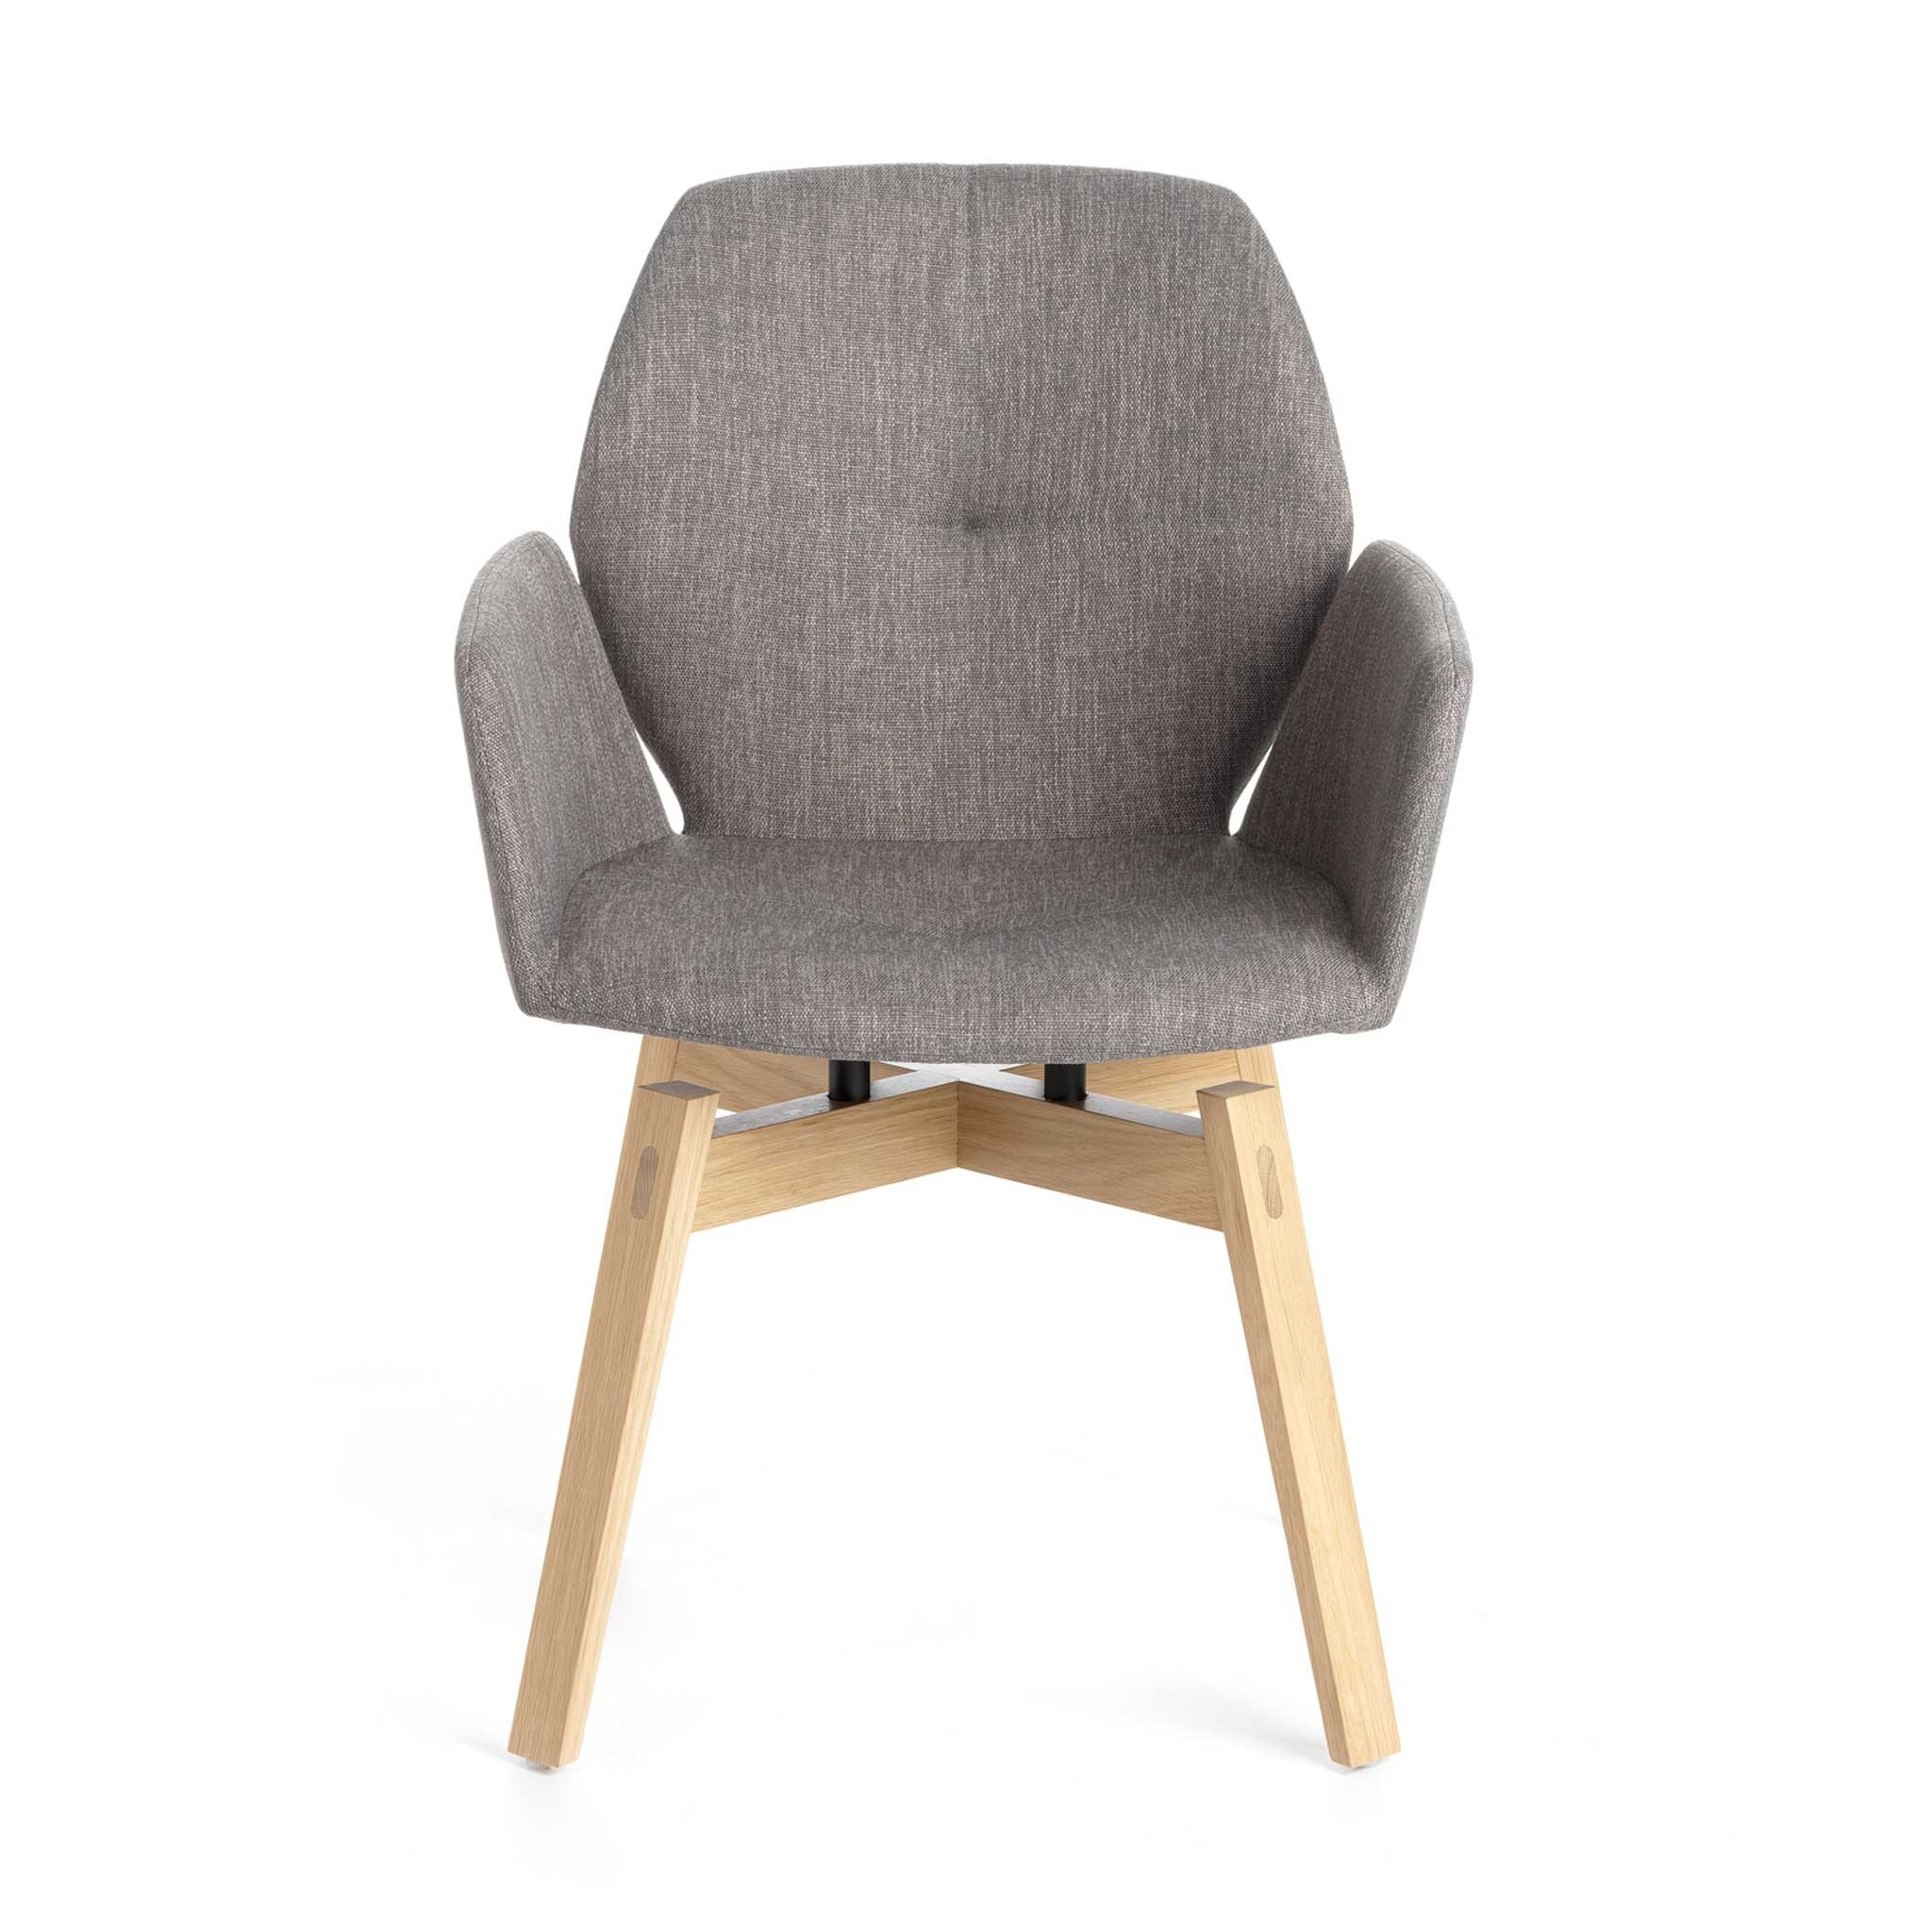 Jay 95 chairs - wooden legs